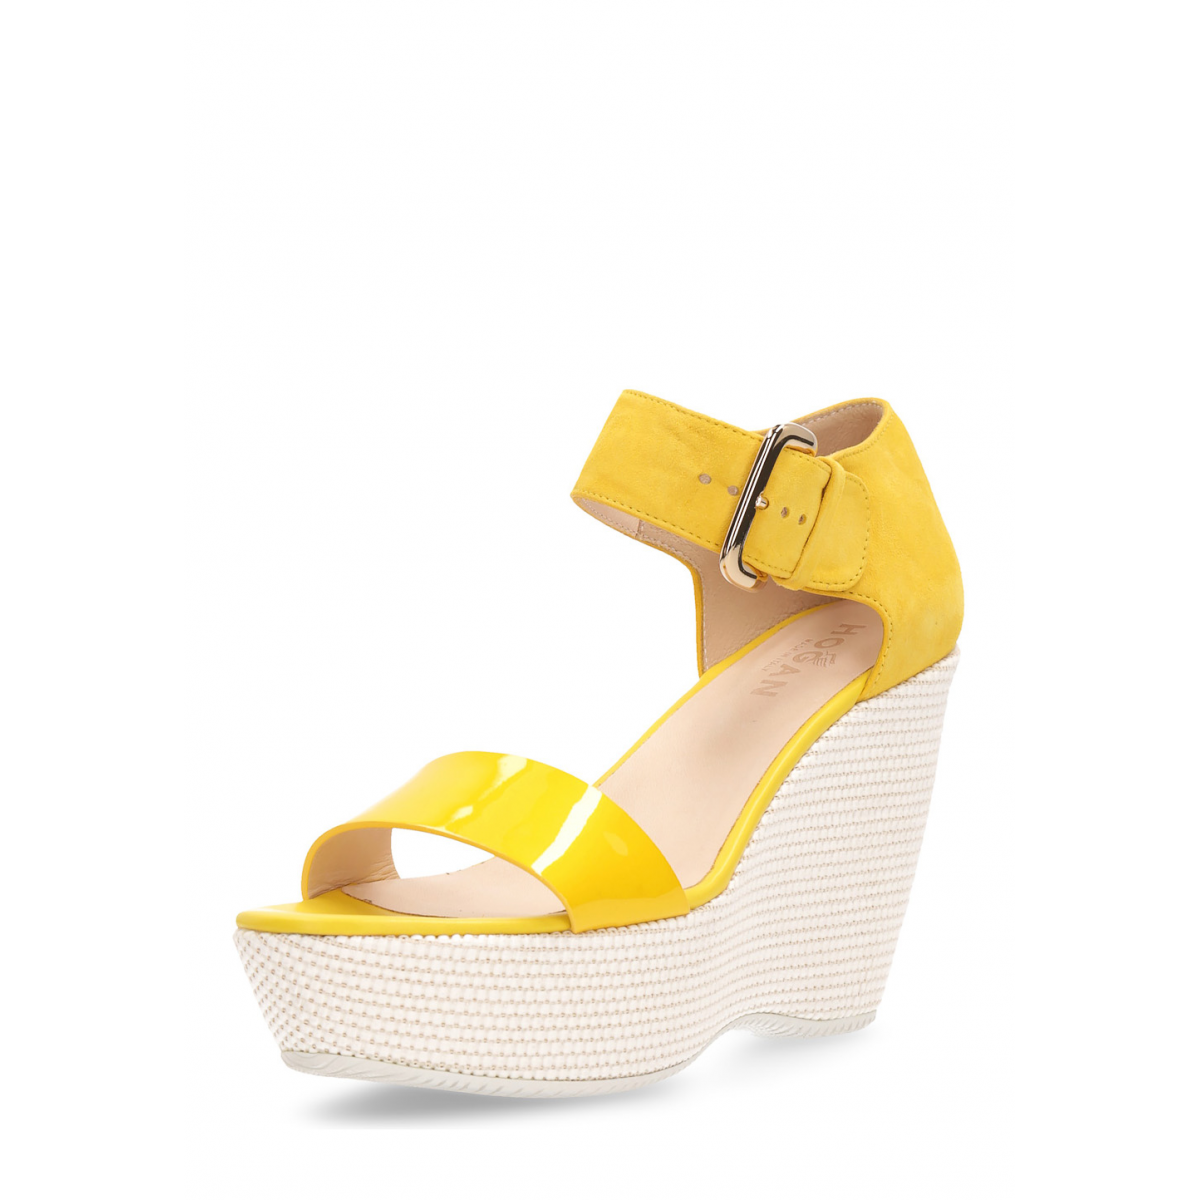 Primary image for Hogan Womens Wedge Sandal Yellow HXW2000H7900NNG013